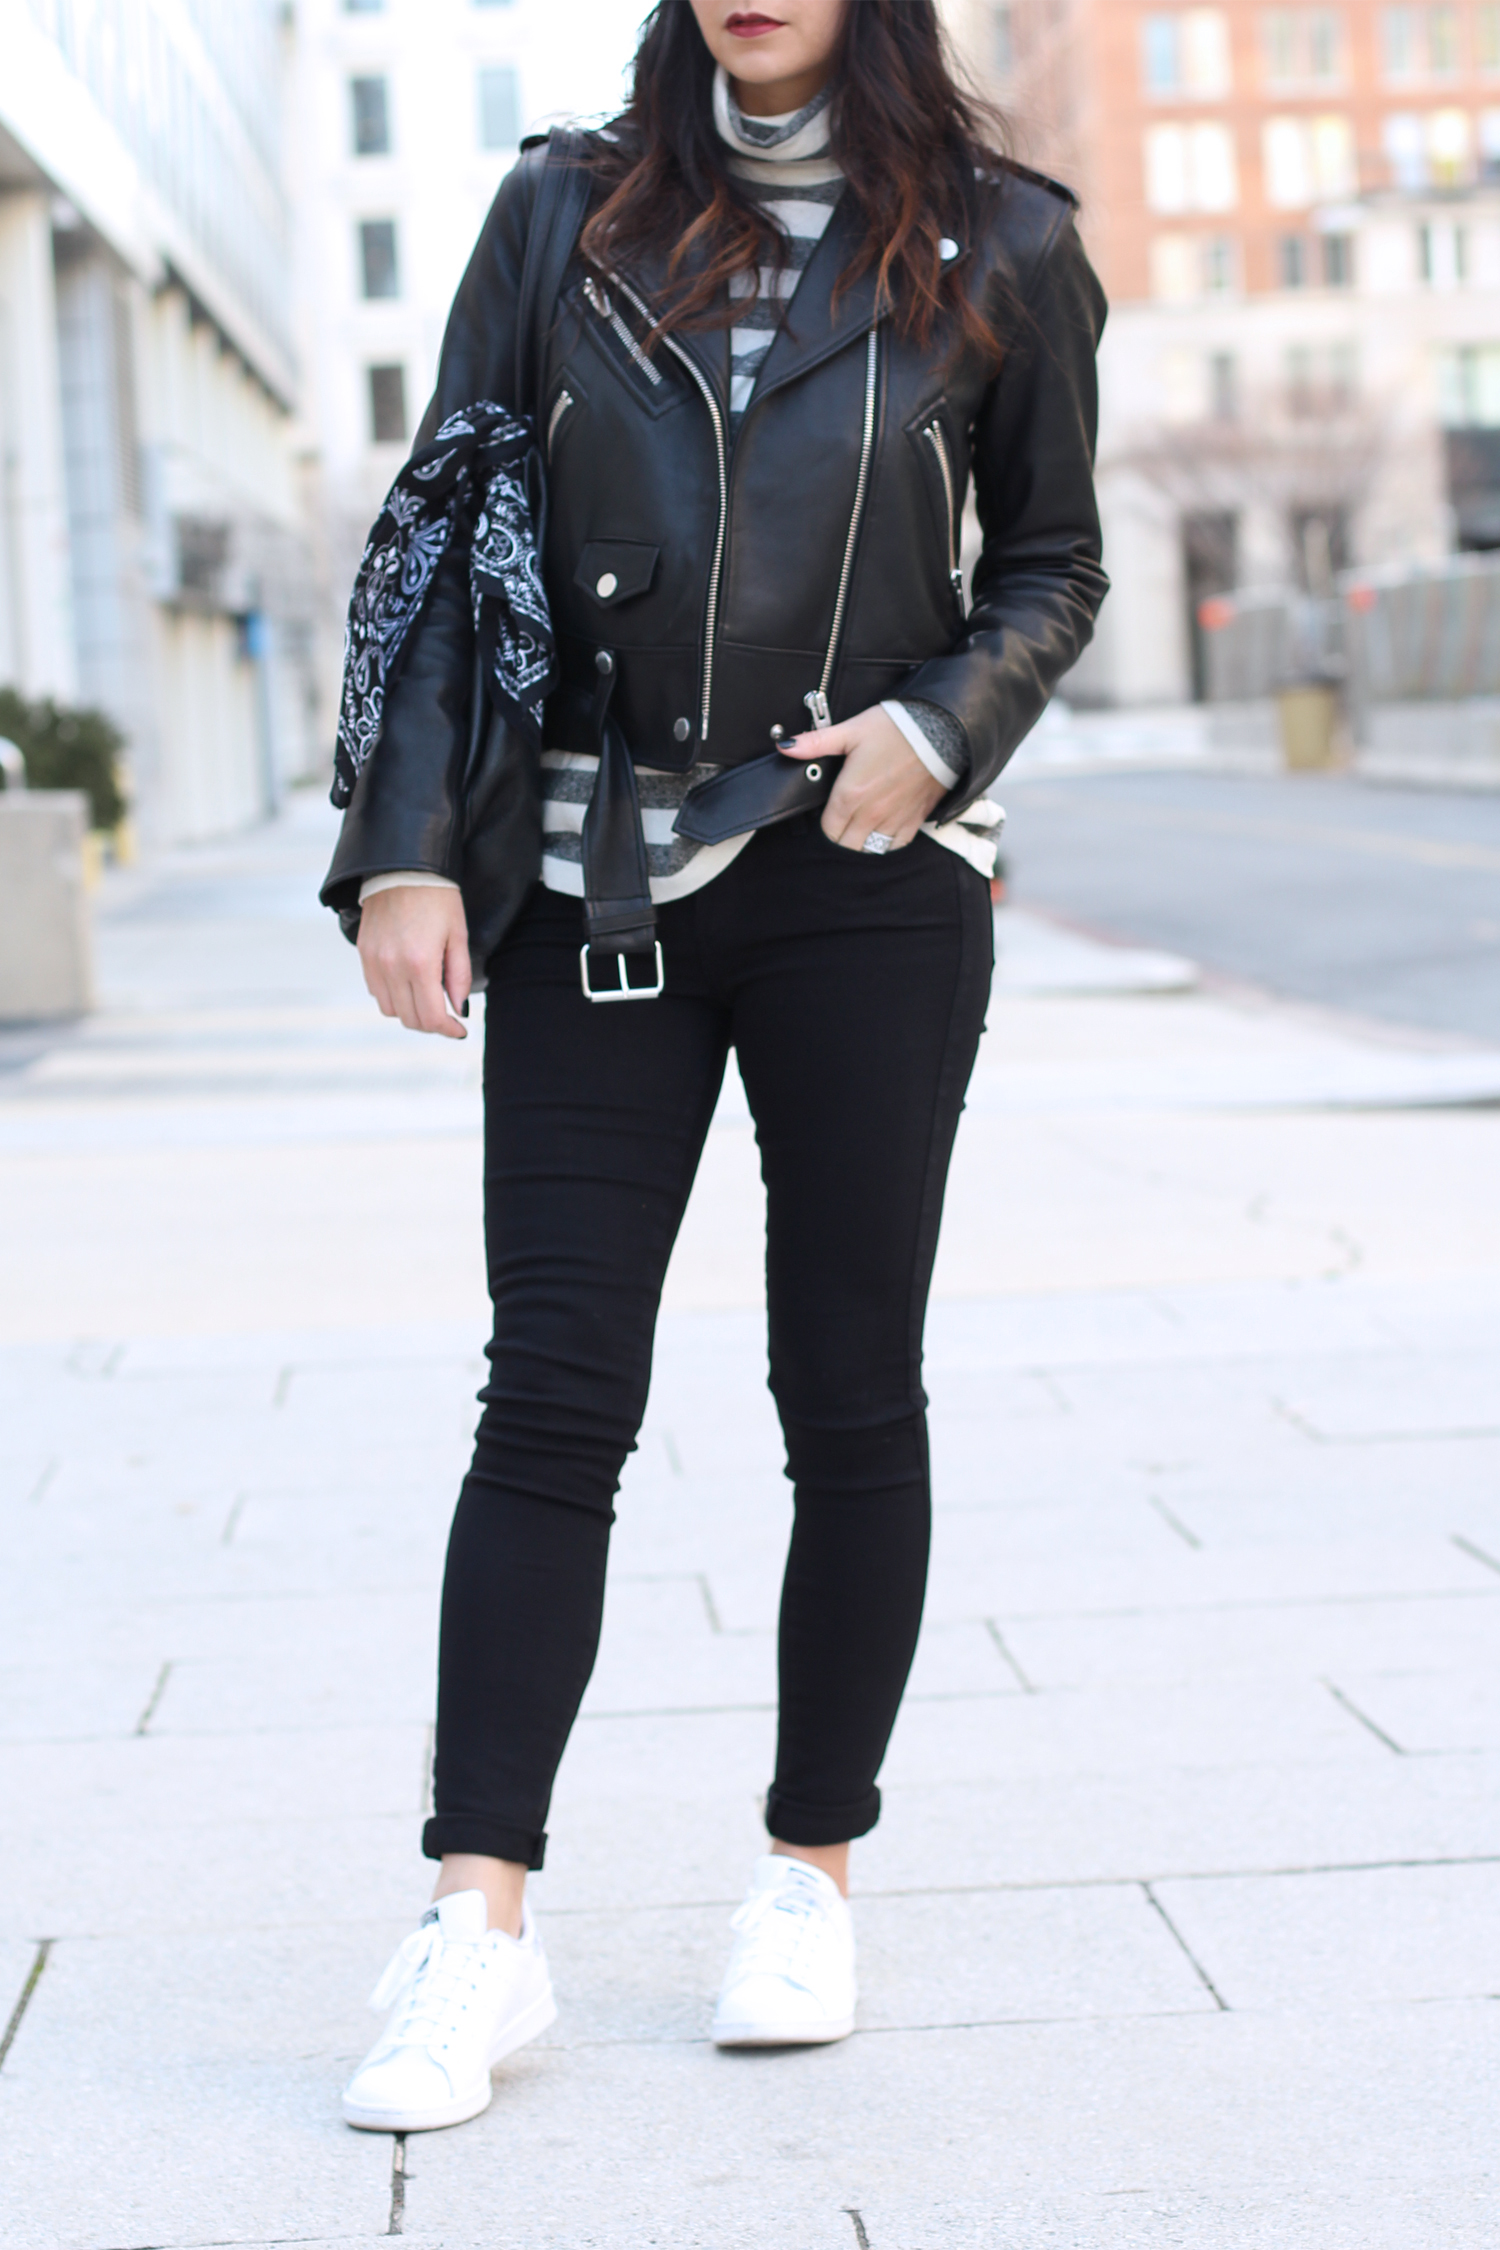 Leather Jacket and White Sneaker Outfit